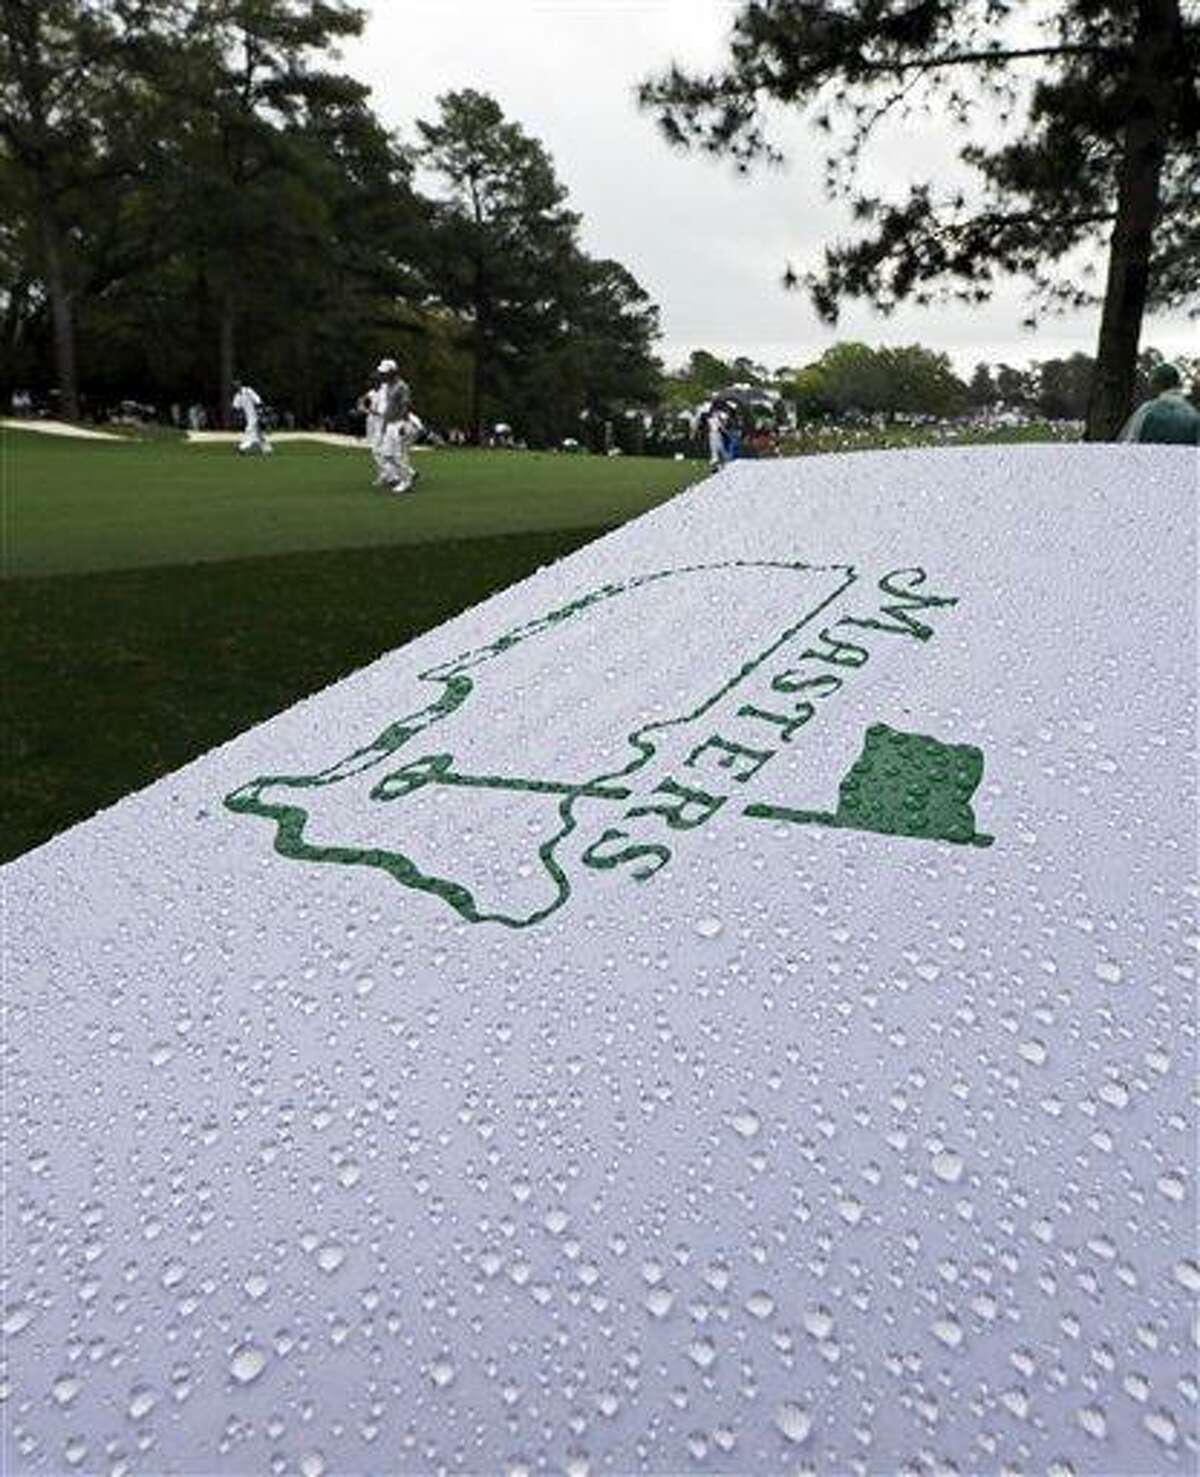 Golfers walk past an umbrella during a light rain storm during the second round of the Masters golf tournament Friday, April 12, 2013, in Augusta, Ga. (AP Photo/David J. Phillip)